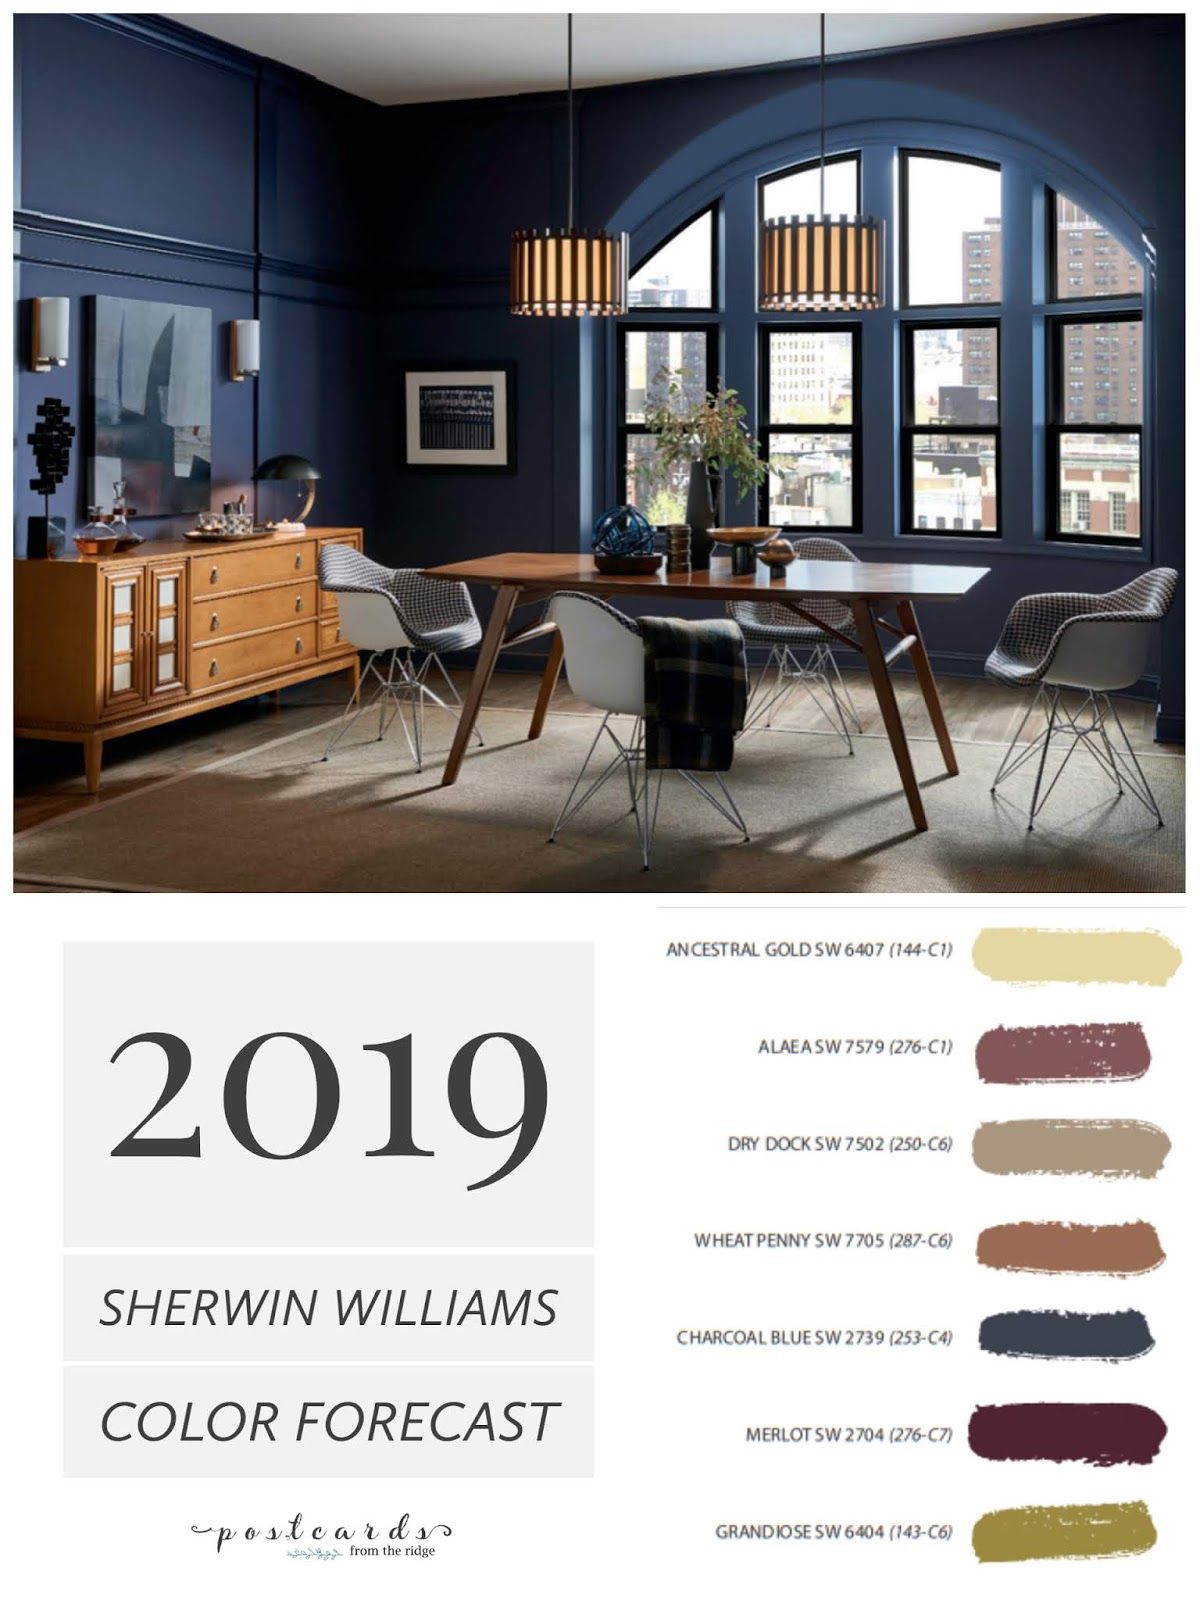 2019 paint color forecast from sherwin williams cactus paint colors sherwin williams color. Black Bedroom Furniture Sets. Home Design Ideas